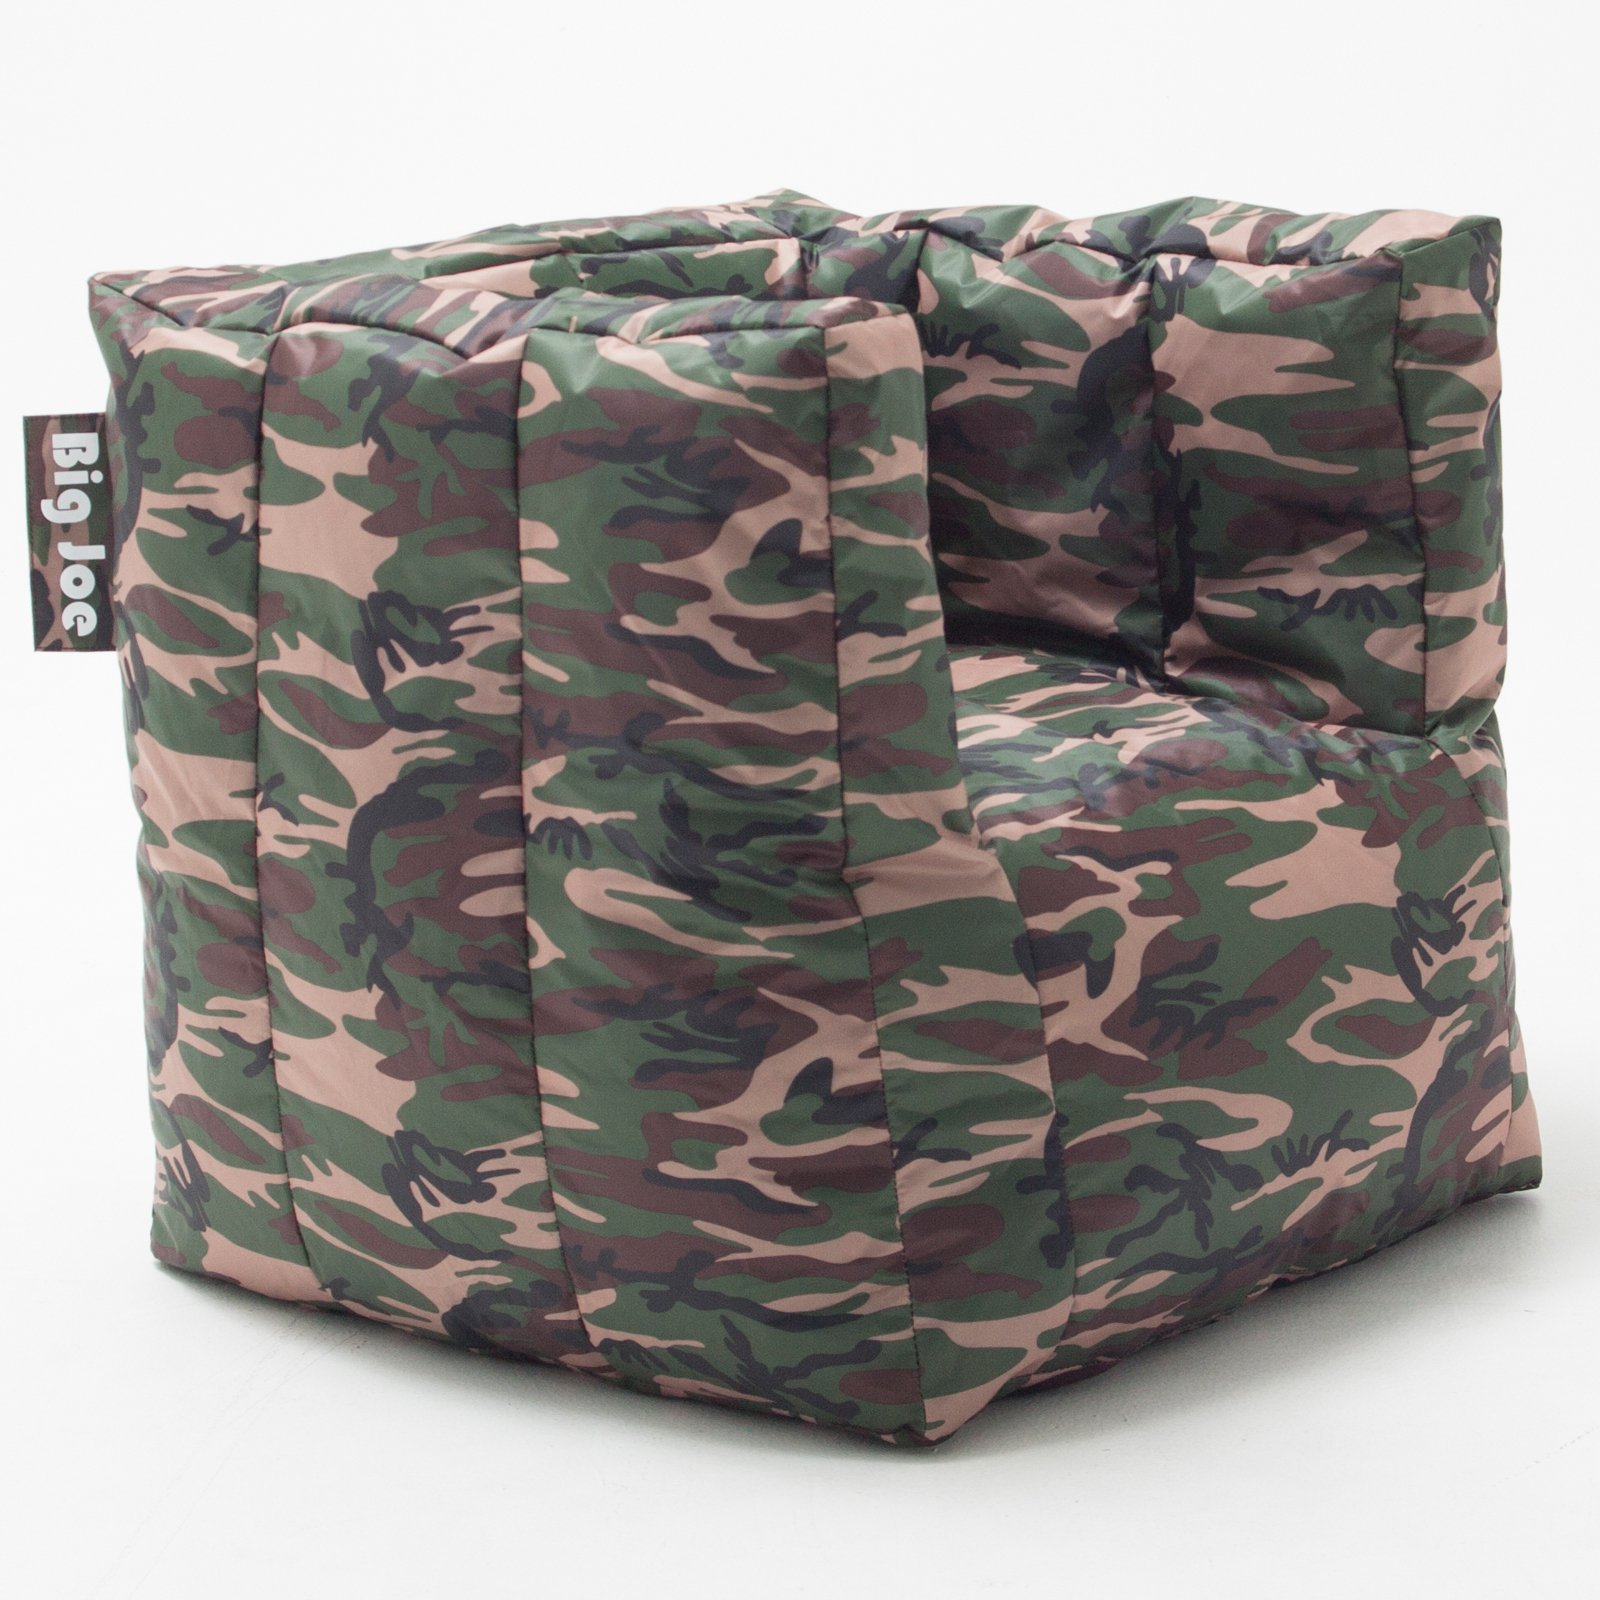 Big Joe Cube Bean Bag Chair Walmart